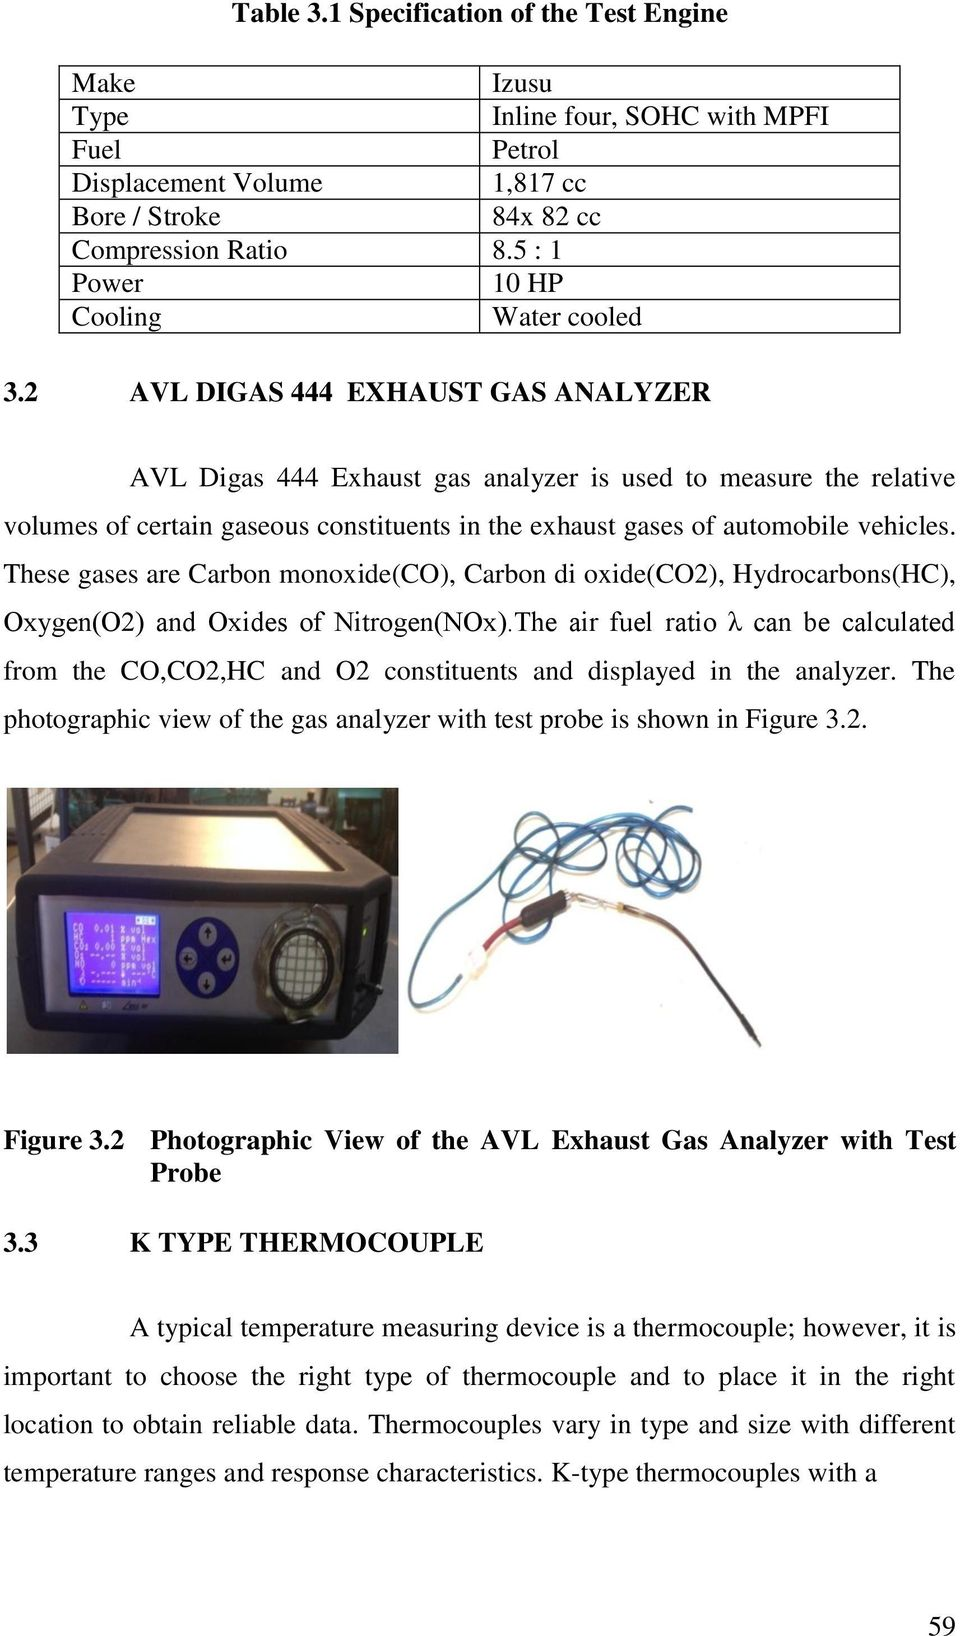 2 AVL DIGAS 444 EXHAUST GAS ANALYZER AVL Digas 444 Exhaust gas analyzer is used to measure the relative volumes of certain gaseous constituents in the exhaust gases of automobile vehicles.